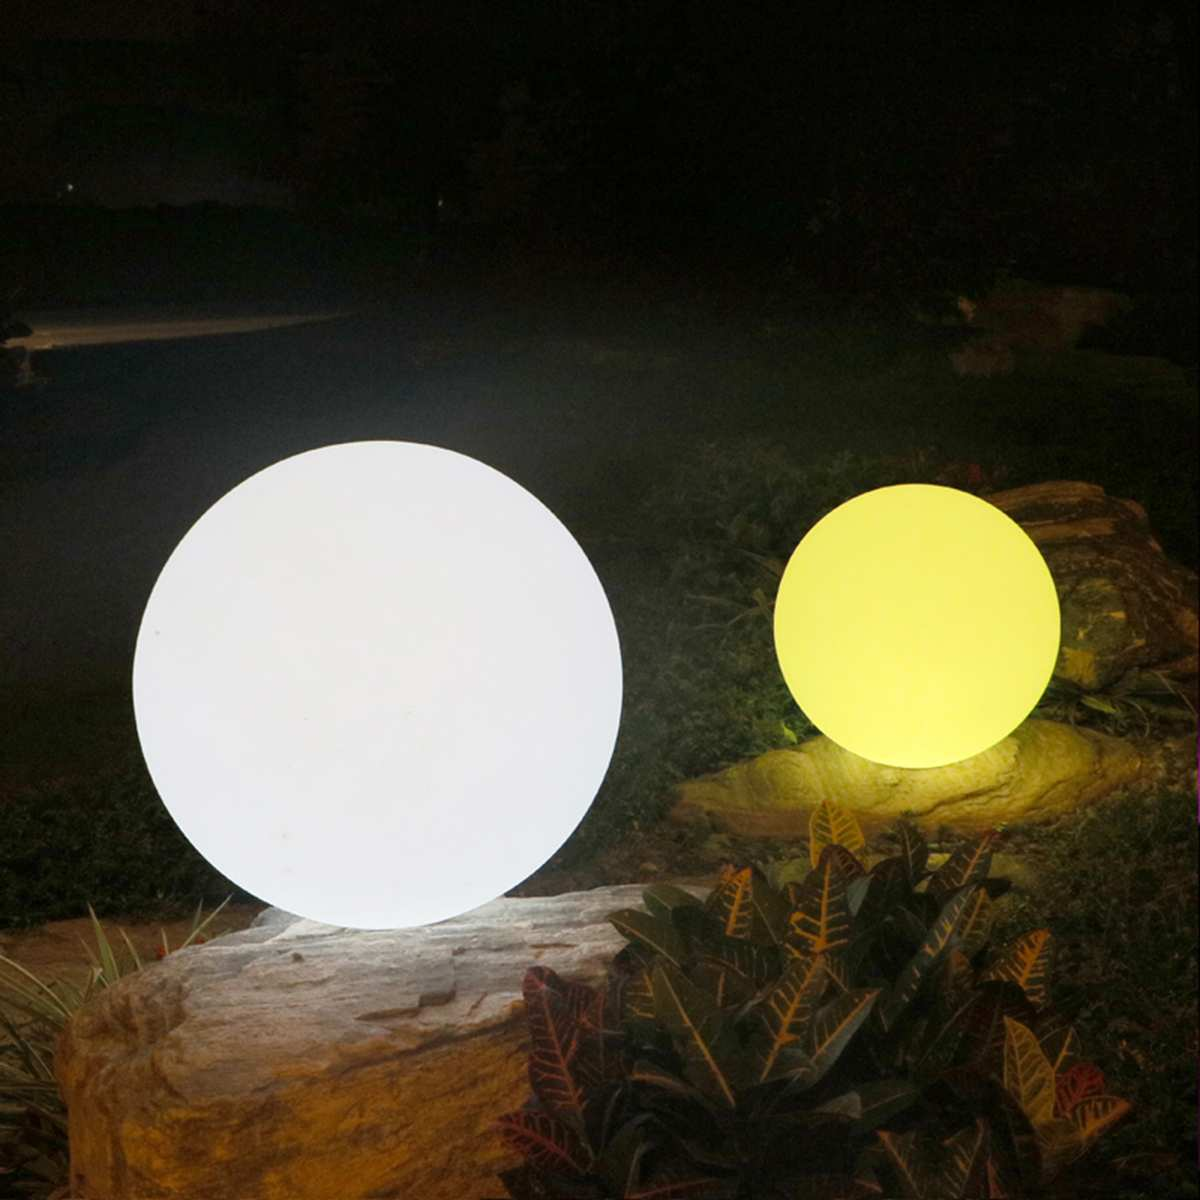 LED Solar Energy Powered Bulb Lamp 30/35/40cm Waterproof Outdoor Garden Street Solar Panel Ball Lights Lawn Yard Landscape Decor